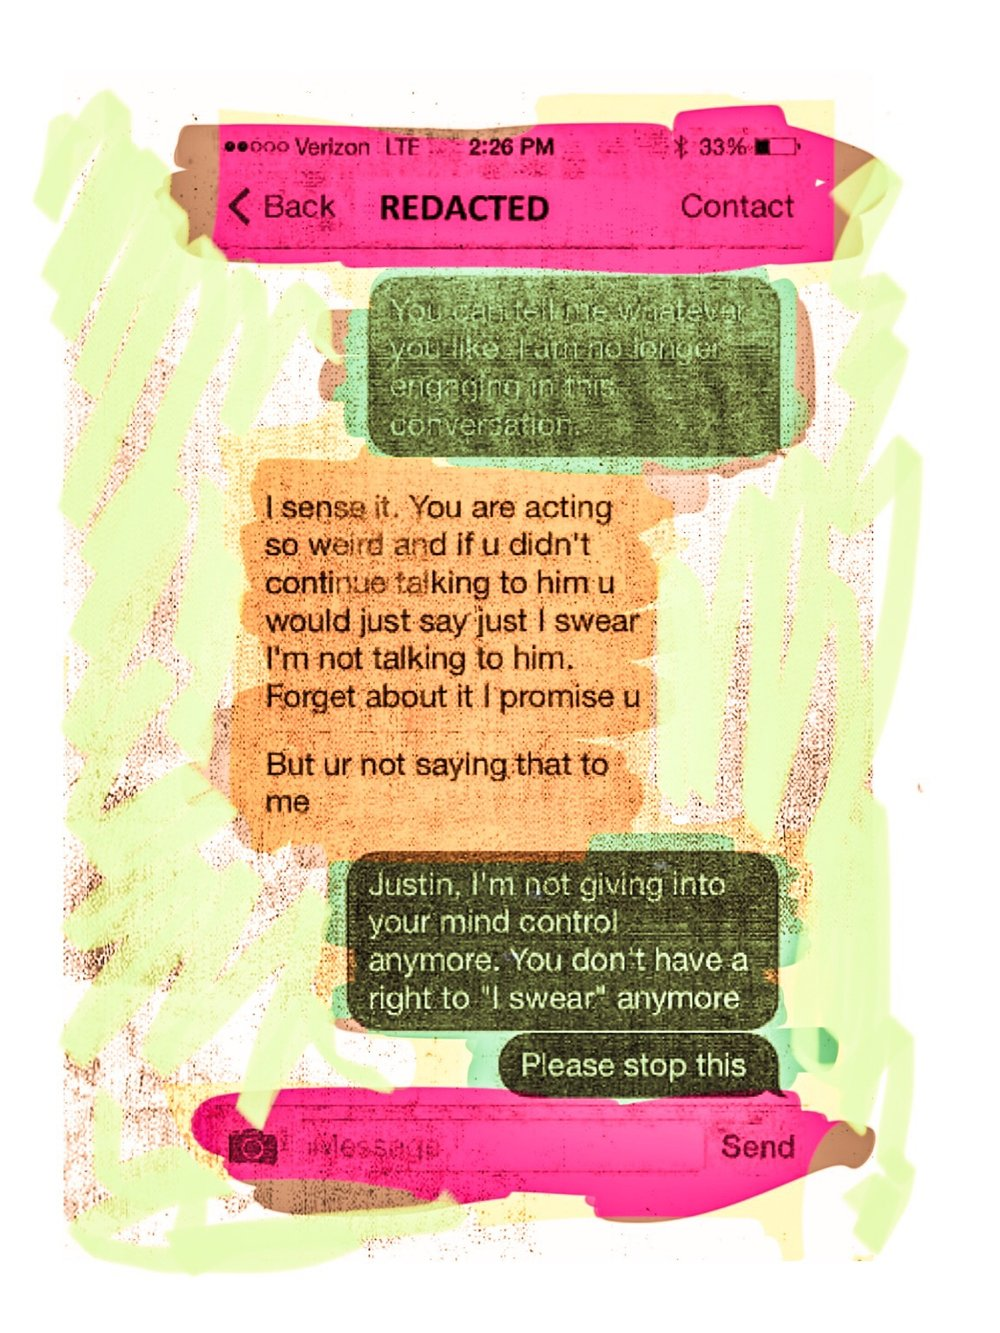 """Texts"", iPhone 6S, digital image."